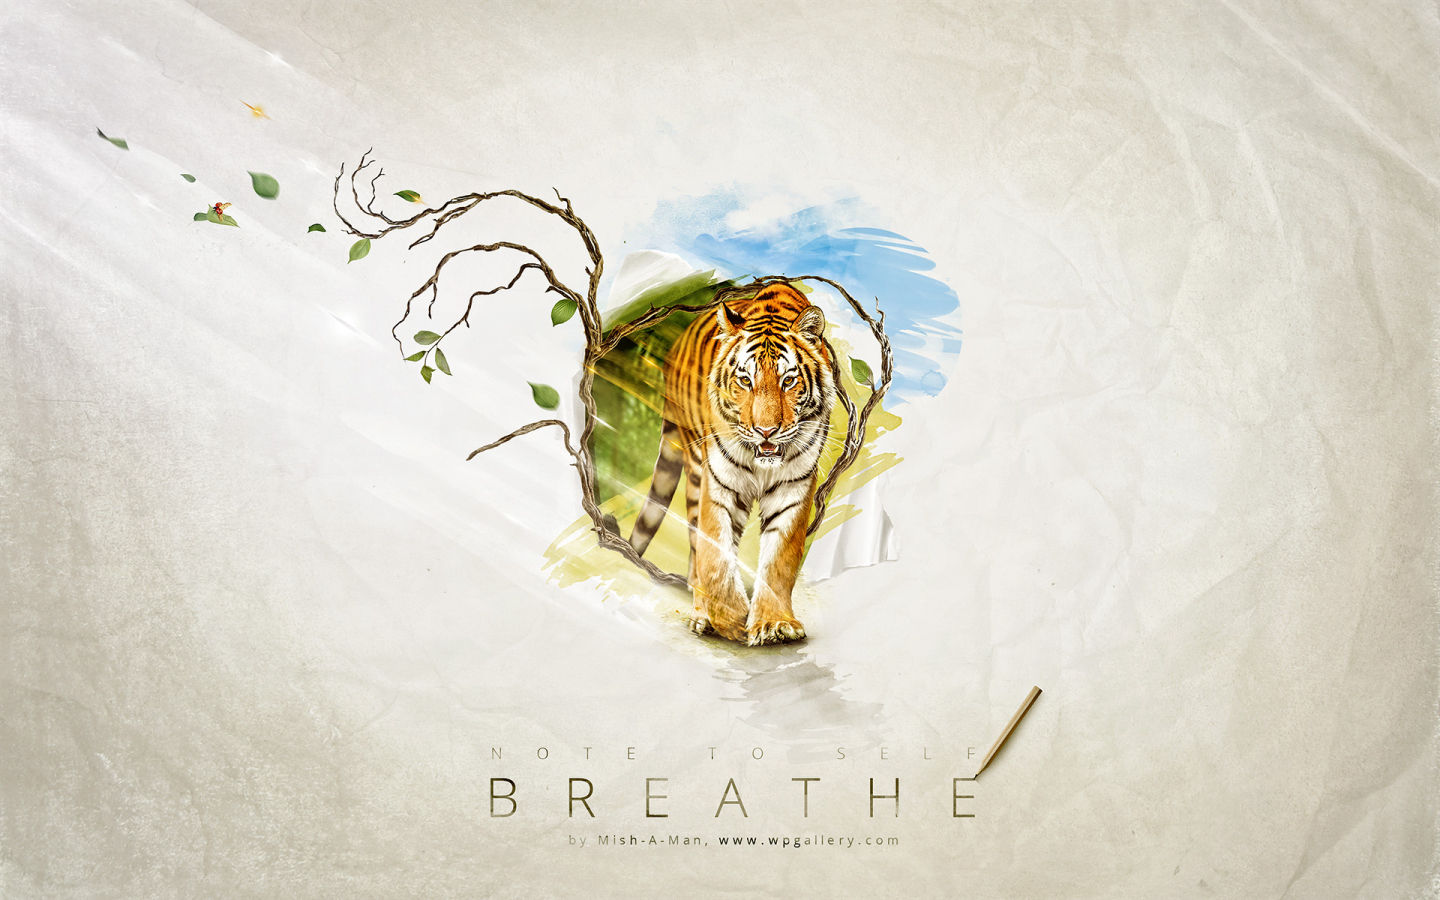 Breathe for 1440 x 900 widescreen resolution